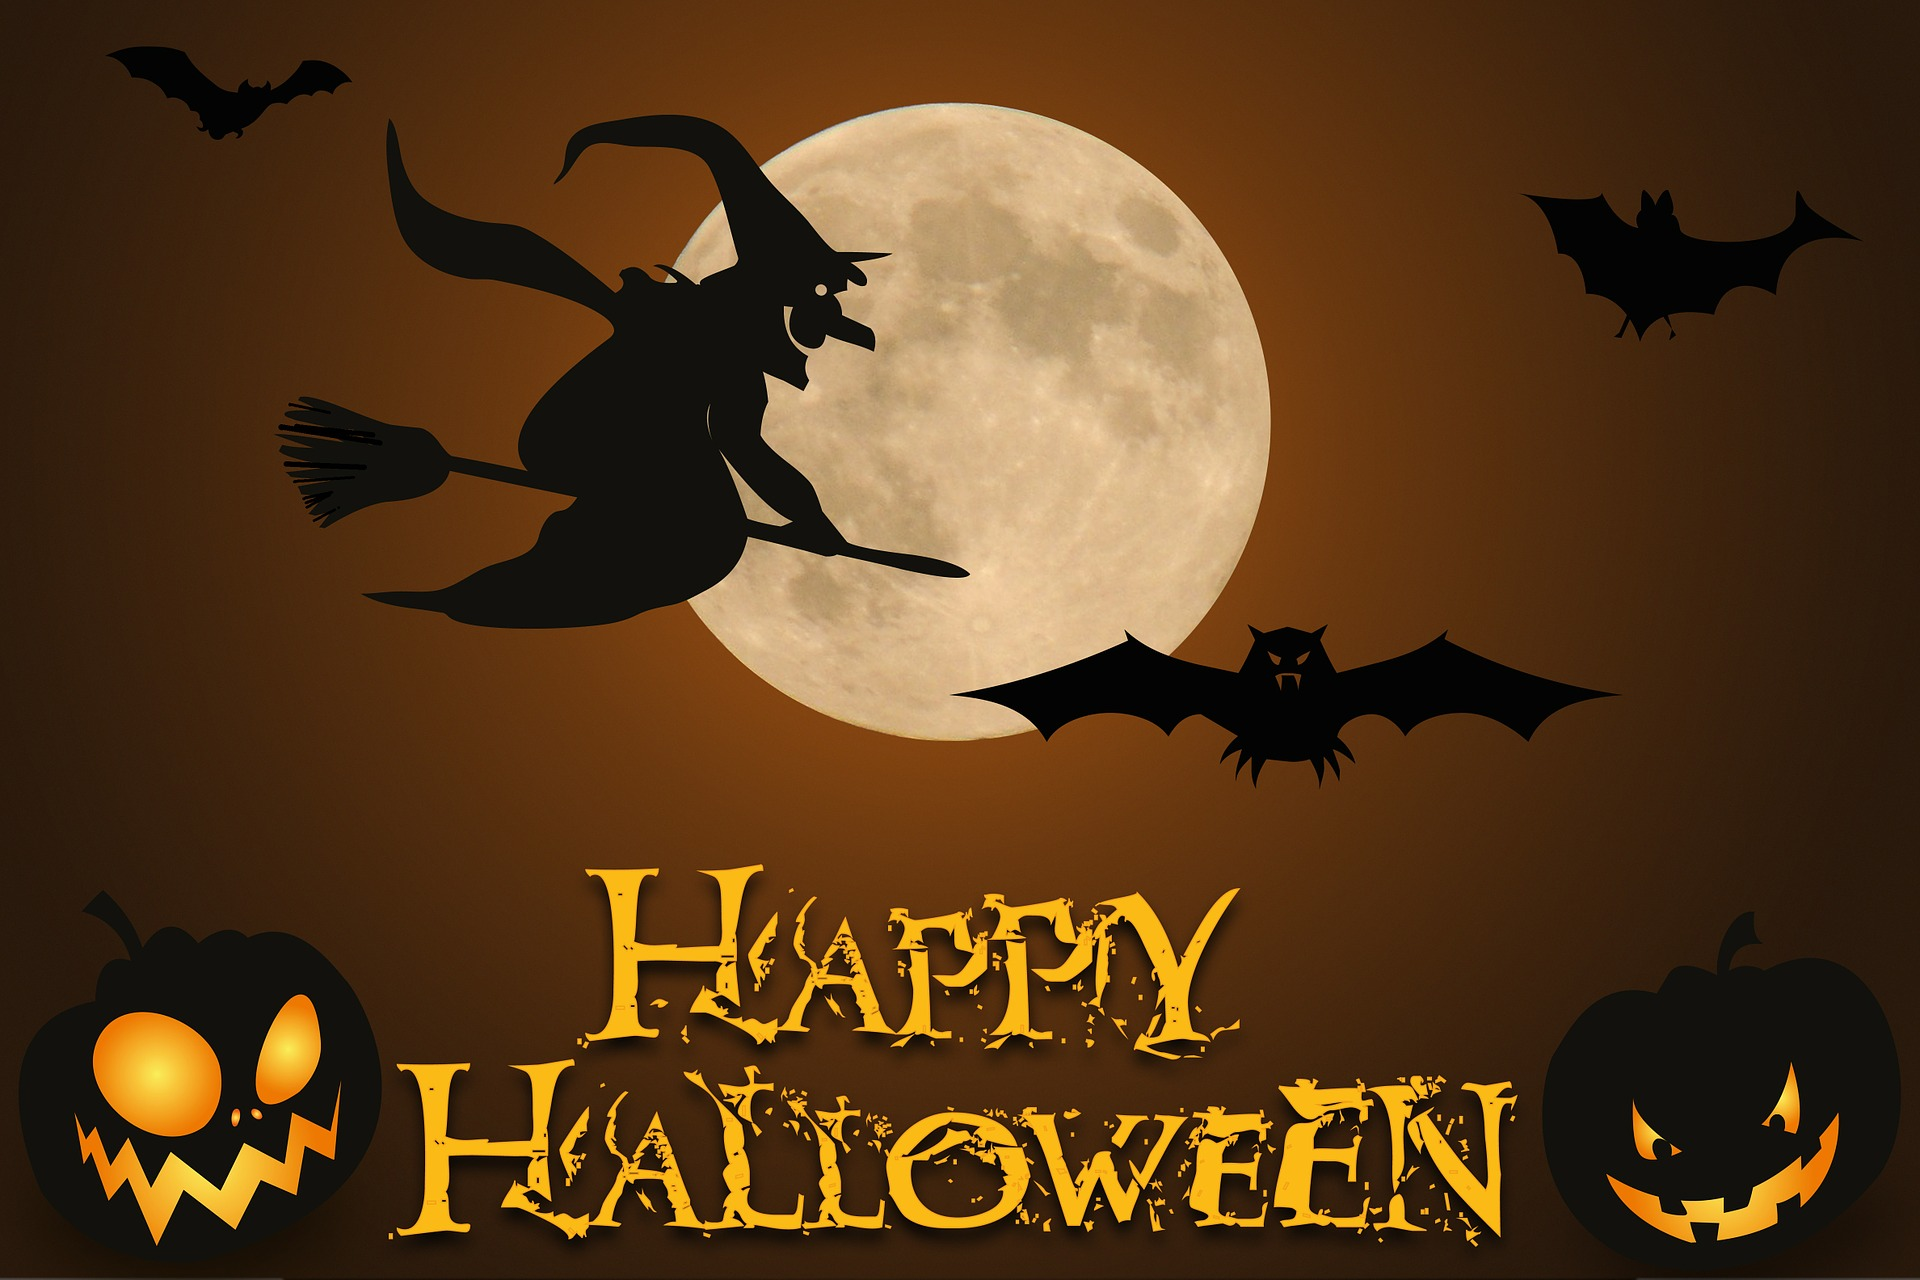 Halloween and witches are the topic for this blog post for the holiday.